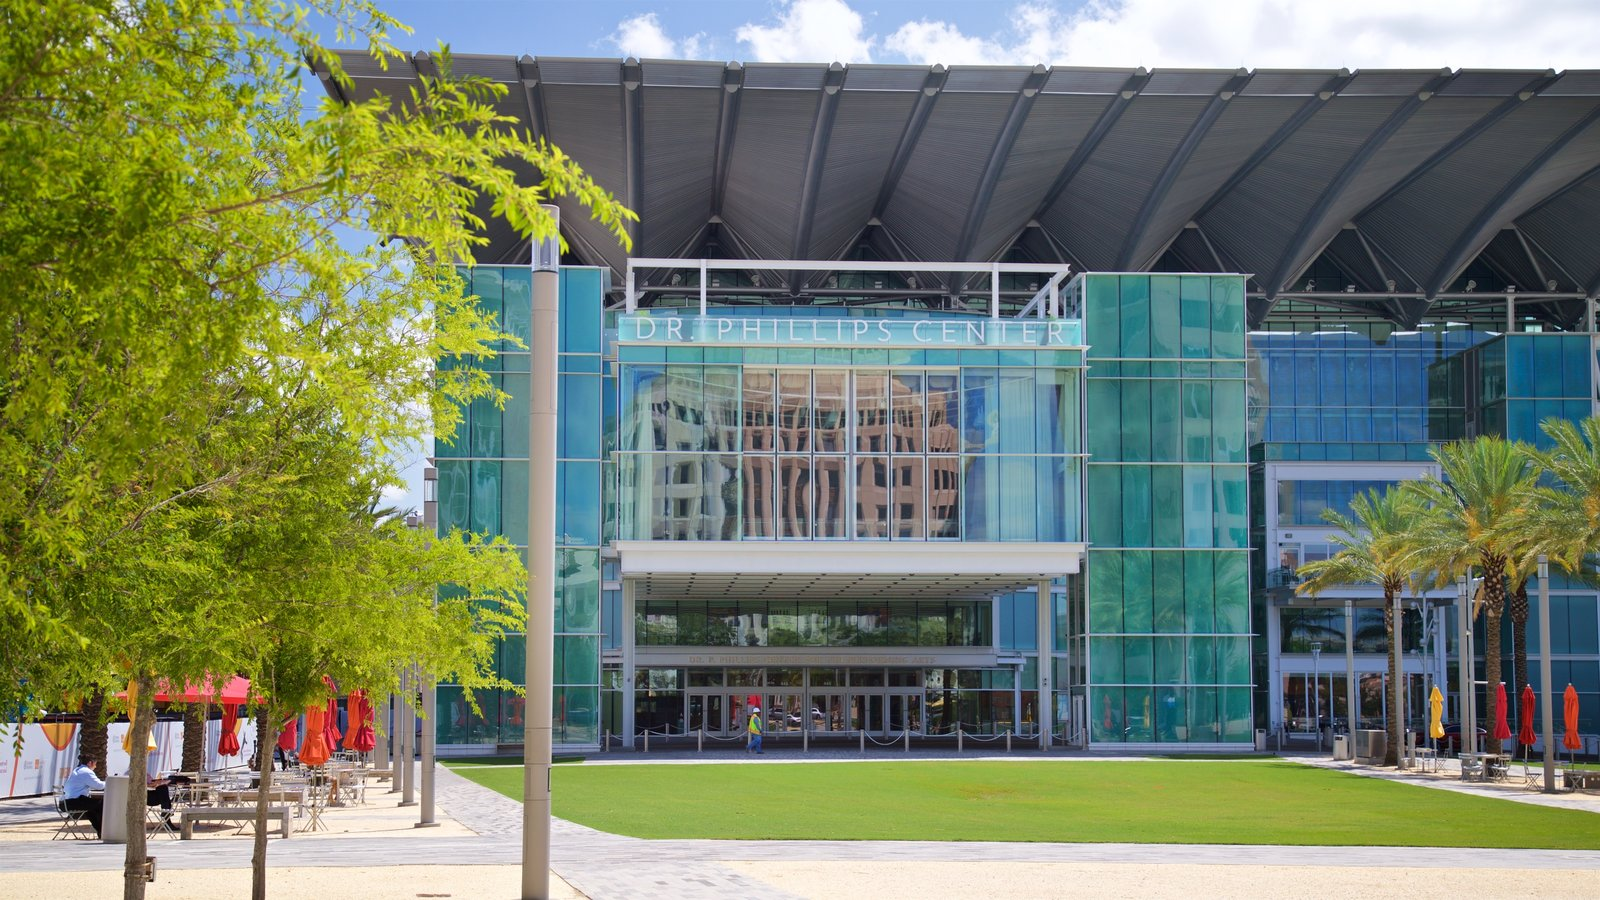 Dr. Phillips Center for the Performing Arts que incluye arquitectura moderna